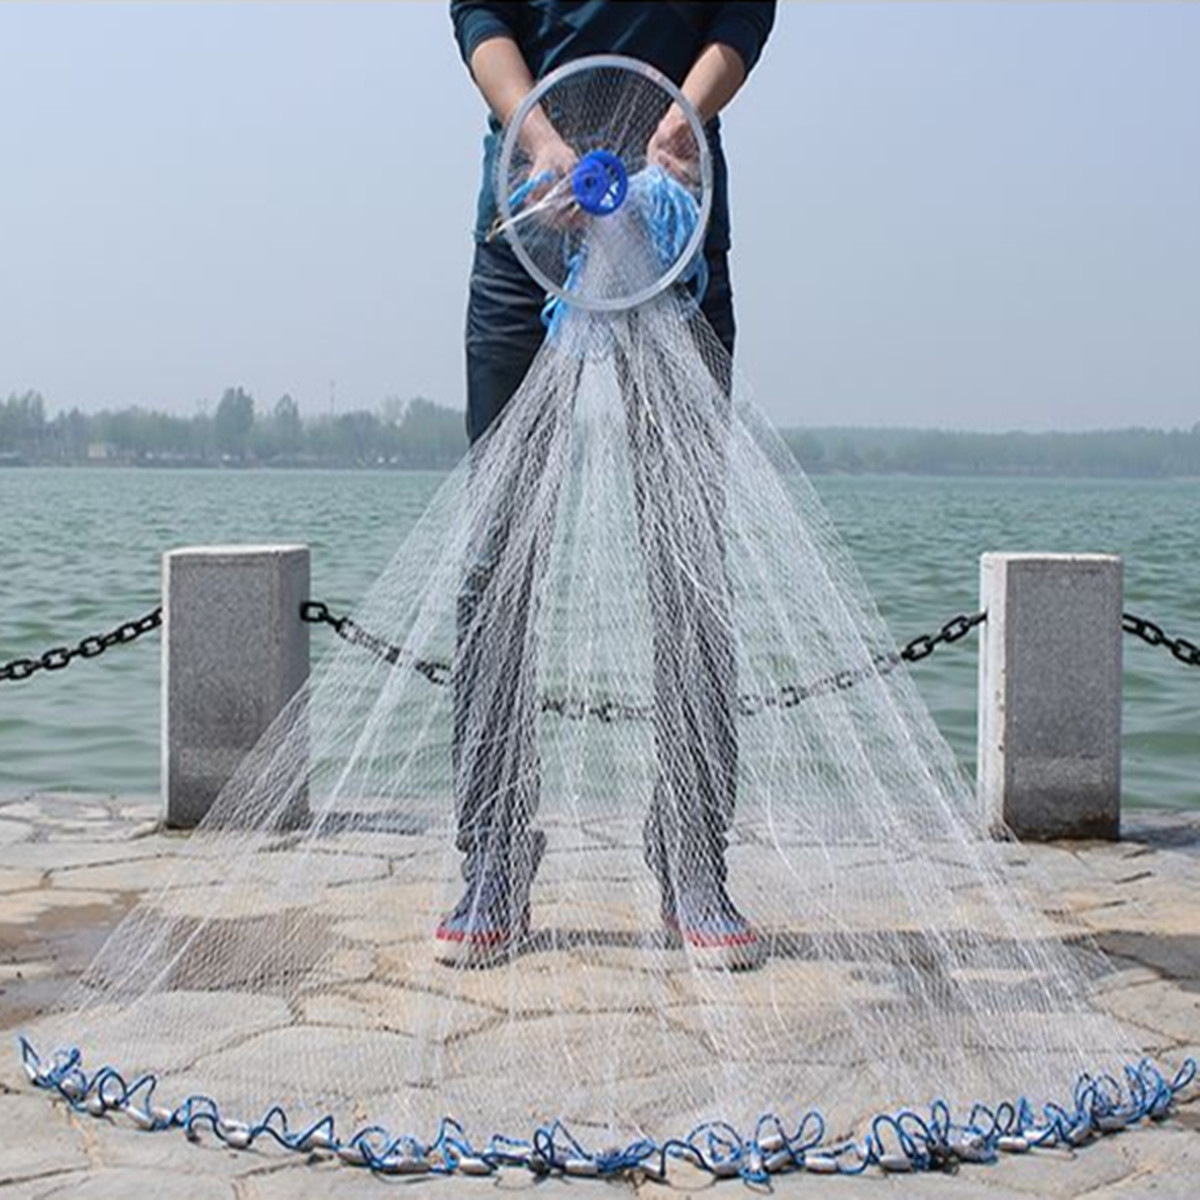 ZANLURE 2.4M/3.6M Throw Cast Net Nylon Monofilament Net Iron Nickel Plating Sinker Sea Fishing Net